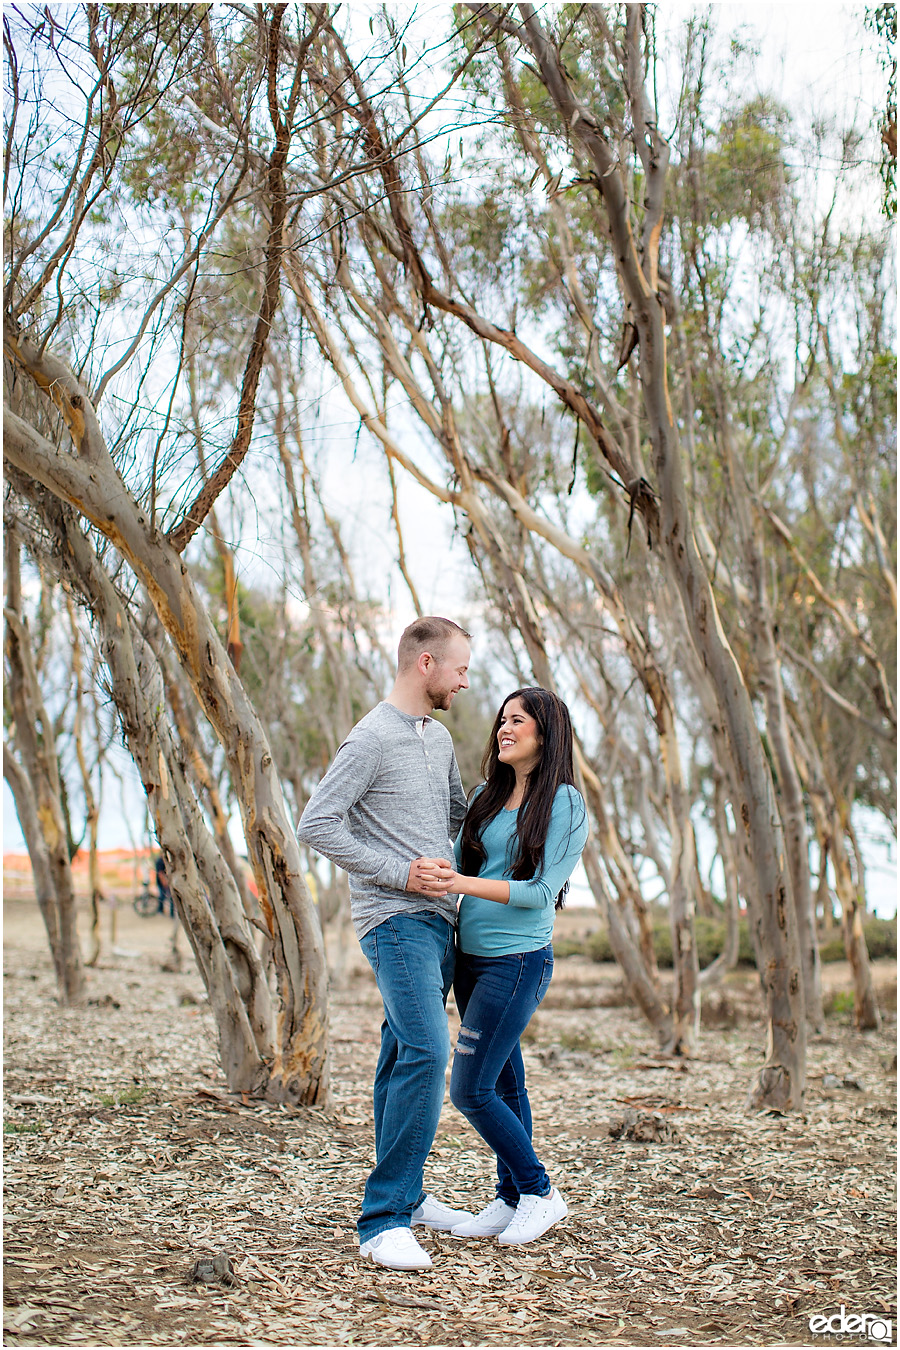 Engagement Session Portraits at Sunset Cliffs in San Diego, CA.